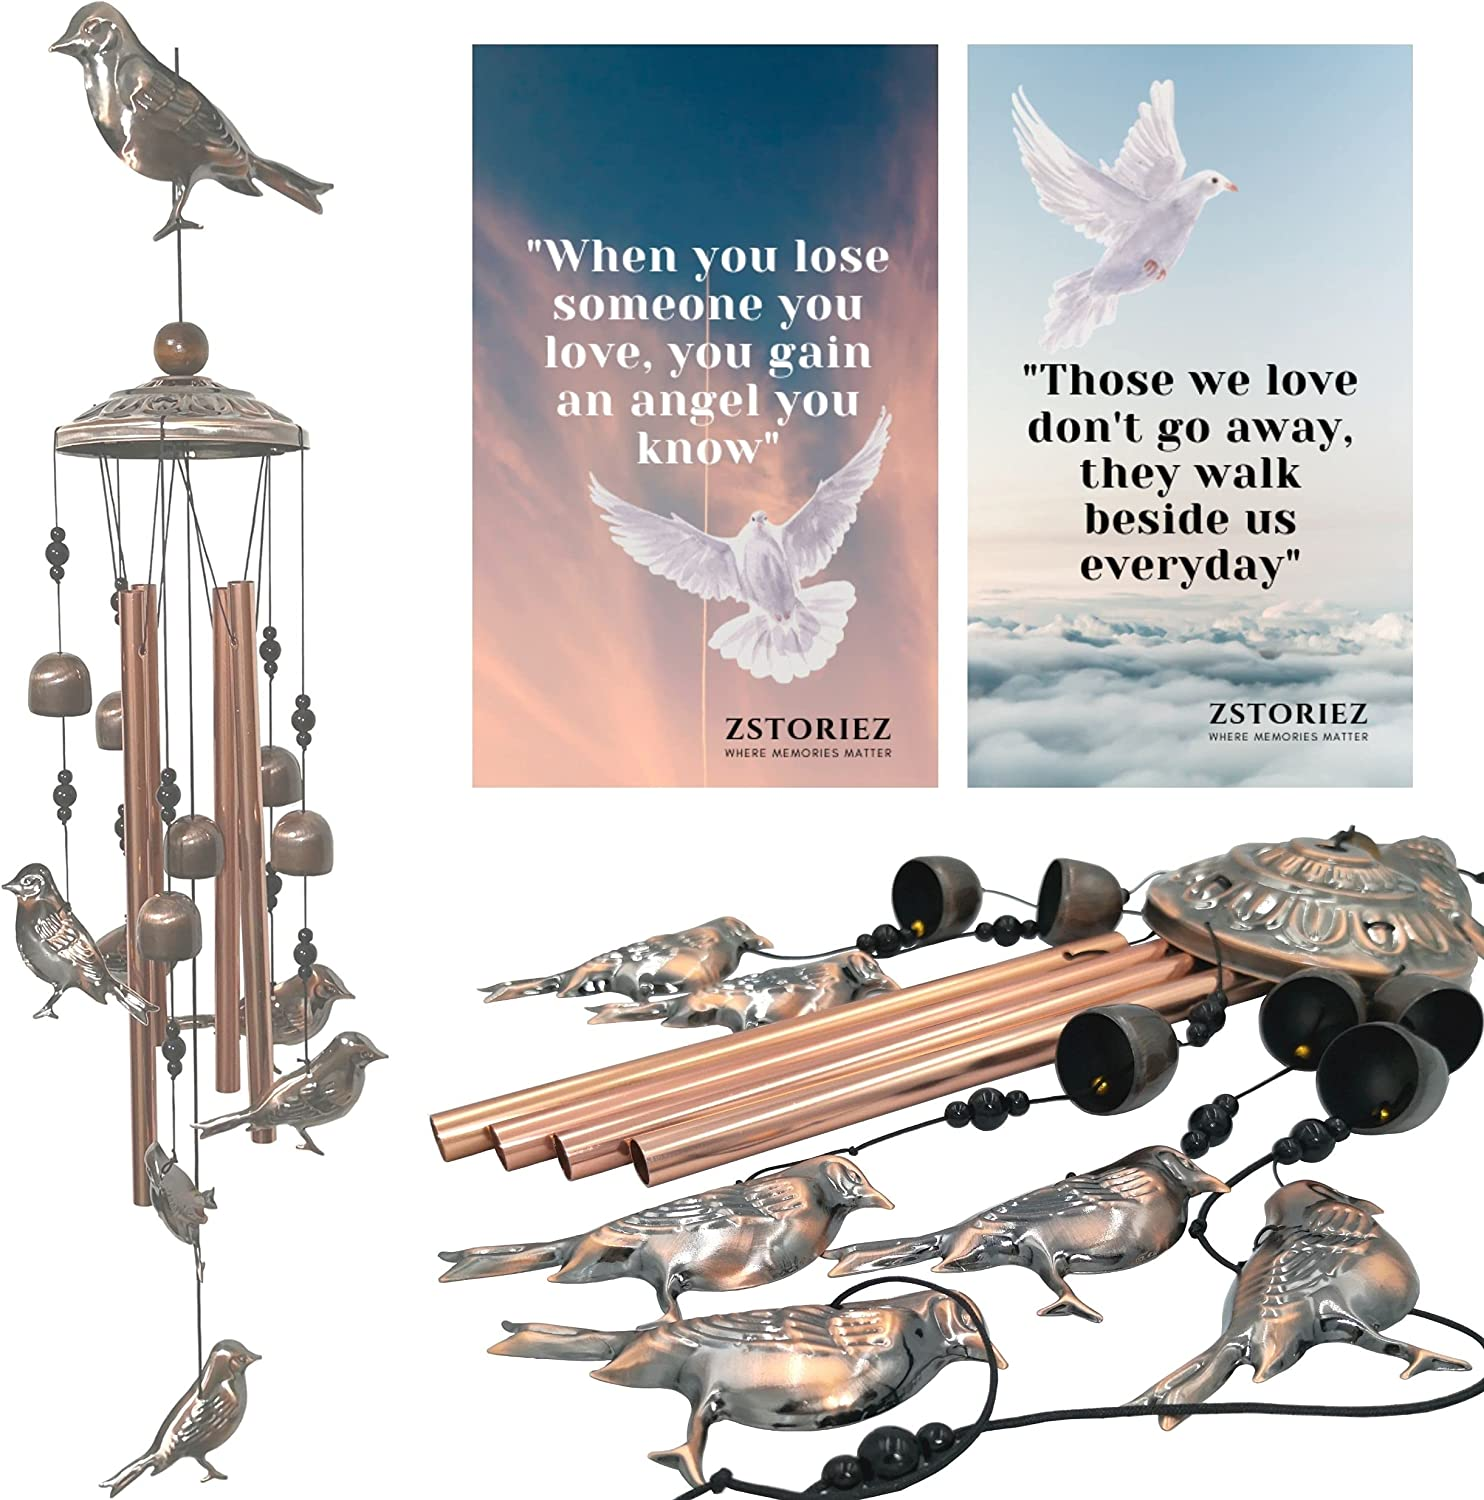 Sympathy Wind Chimes, Memorial Wind Chimes for Loss of Loved One Prime, Windchimes Cardinals Sympathy Gifts in Memory of Loss of Father, Mother, Funeral Bereavement Grief Chimes